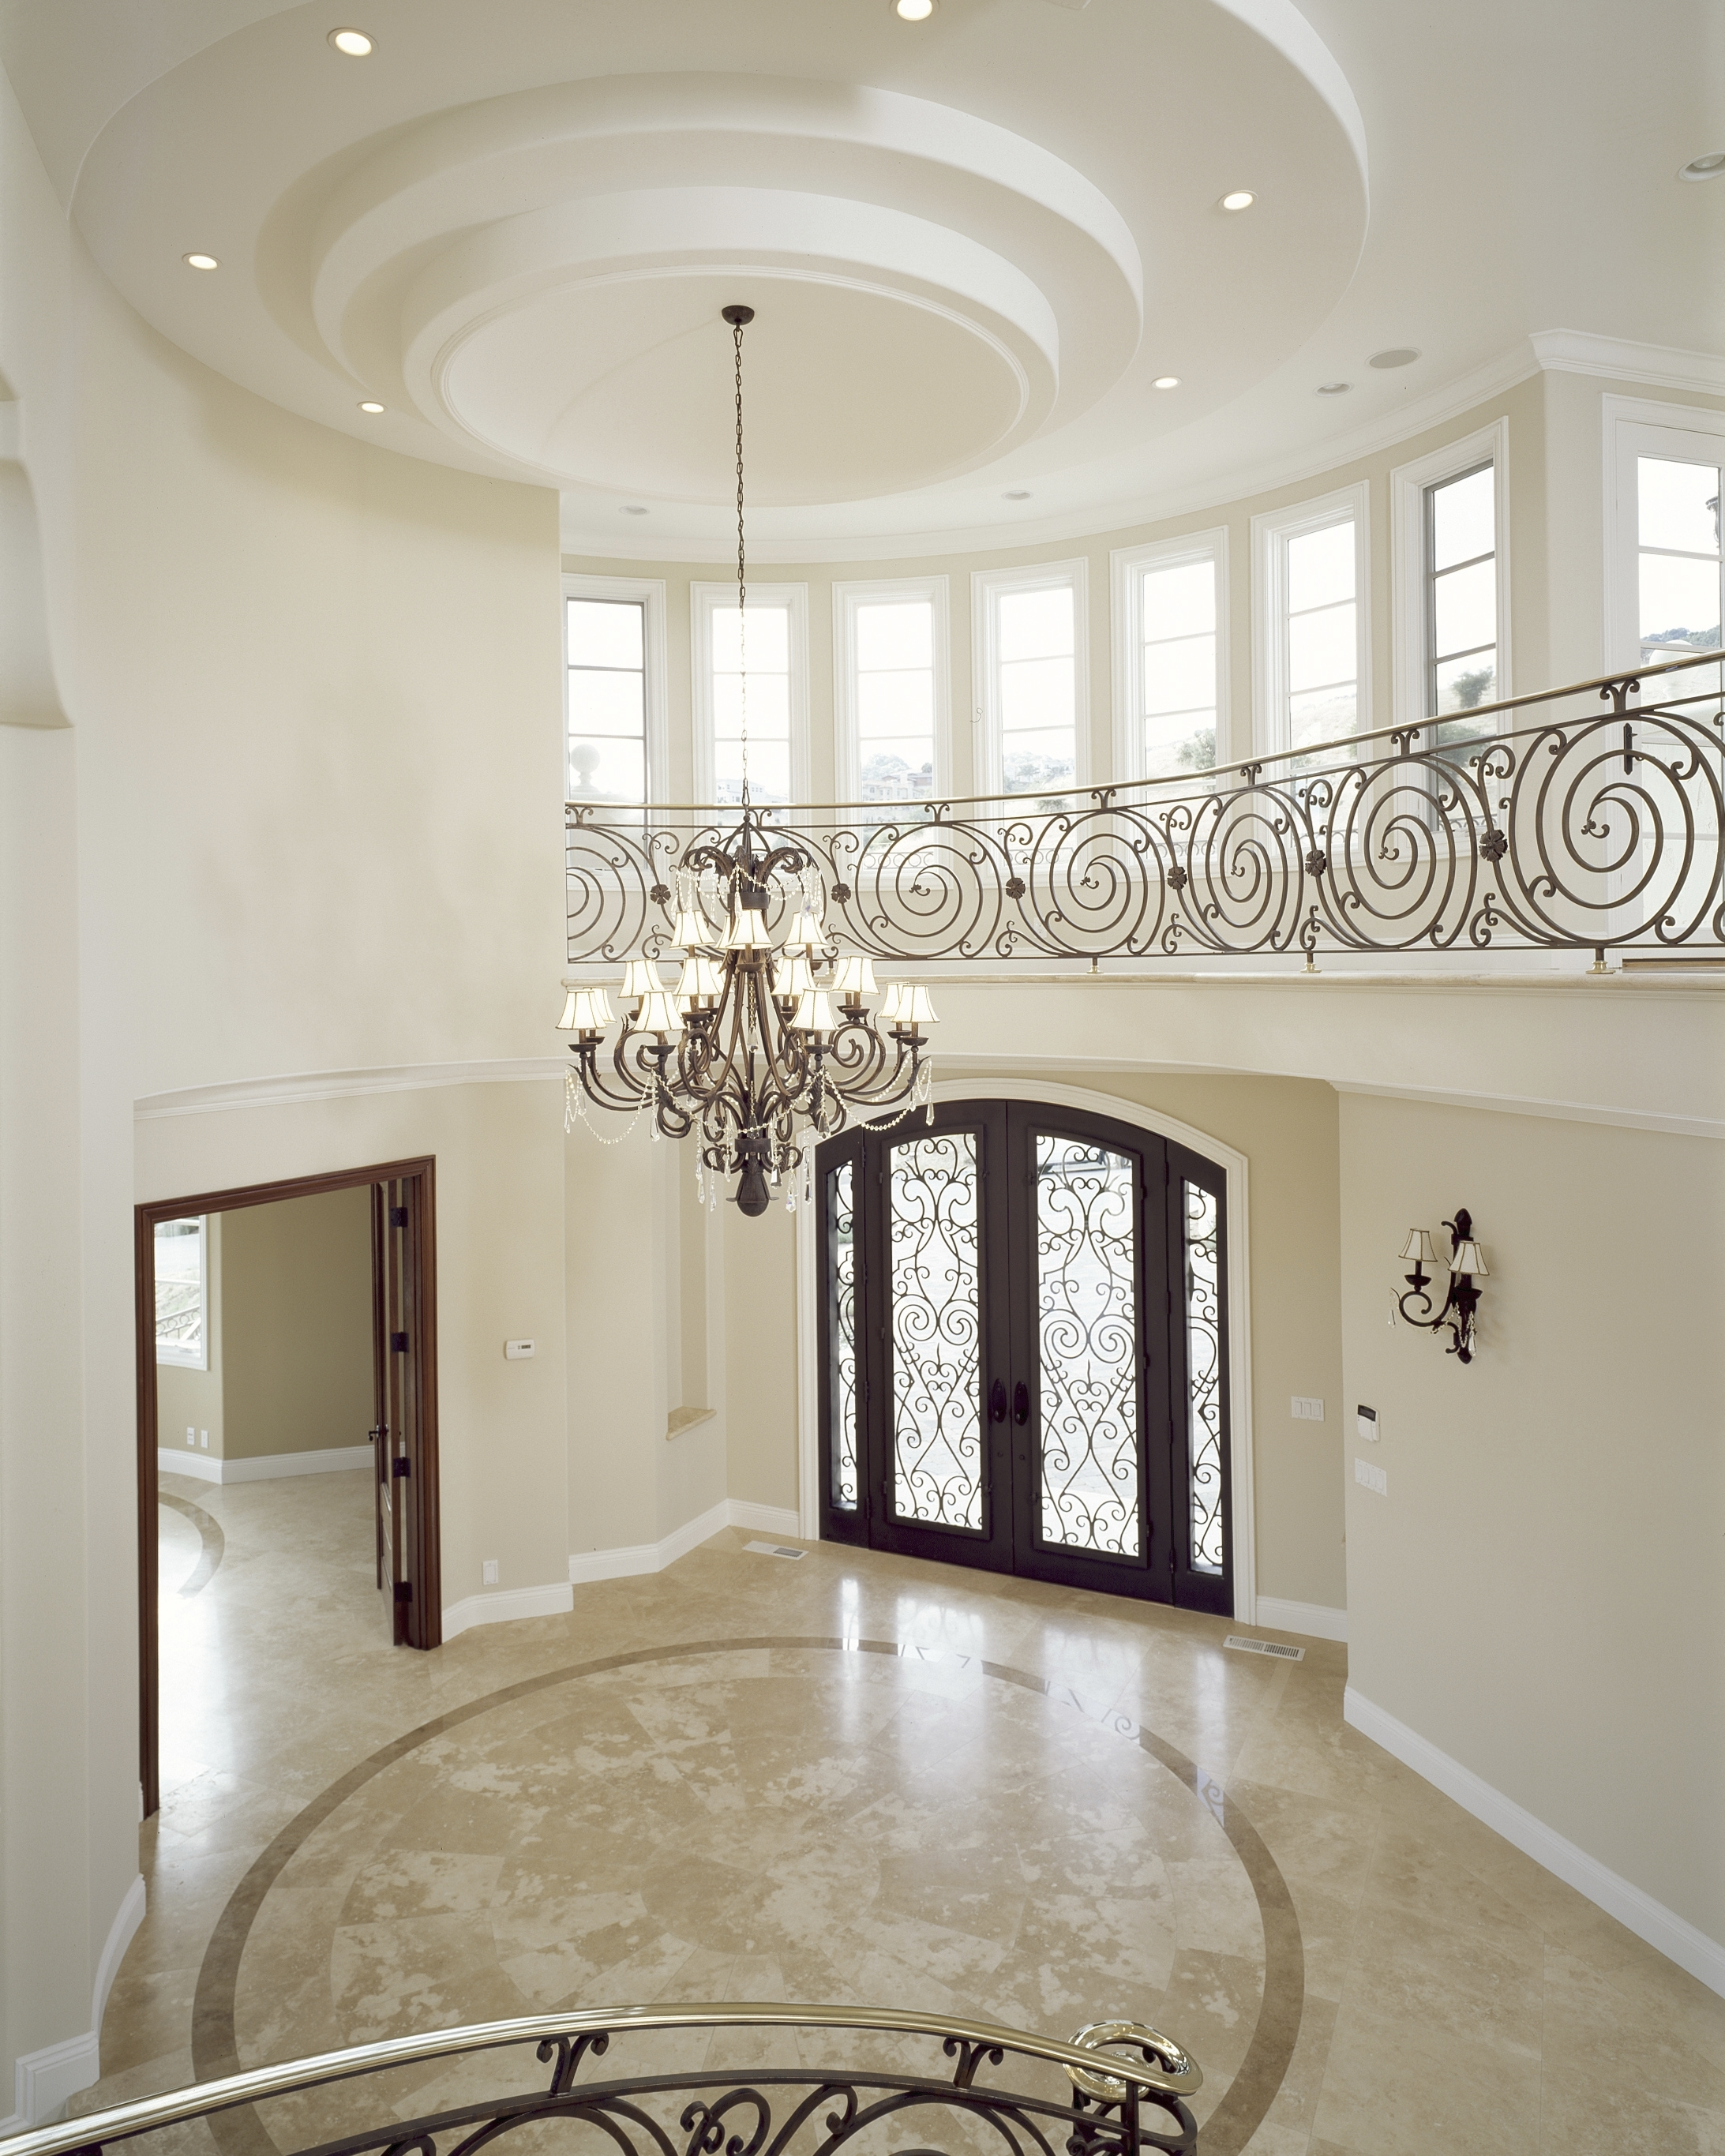 Chandeliers Design : Amazing Brown Iron Holder Entryway Chandelier Intended For Latest Small Hallway Chandeliers (View 2 of 15)